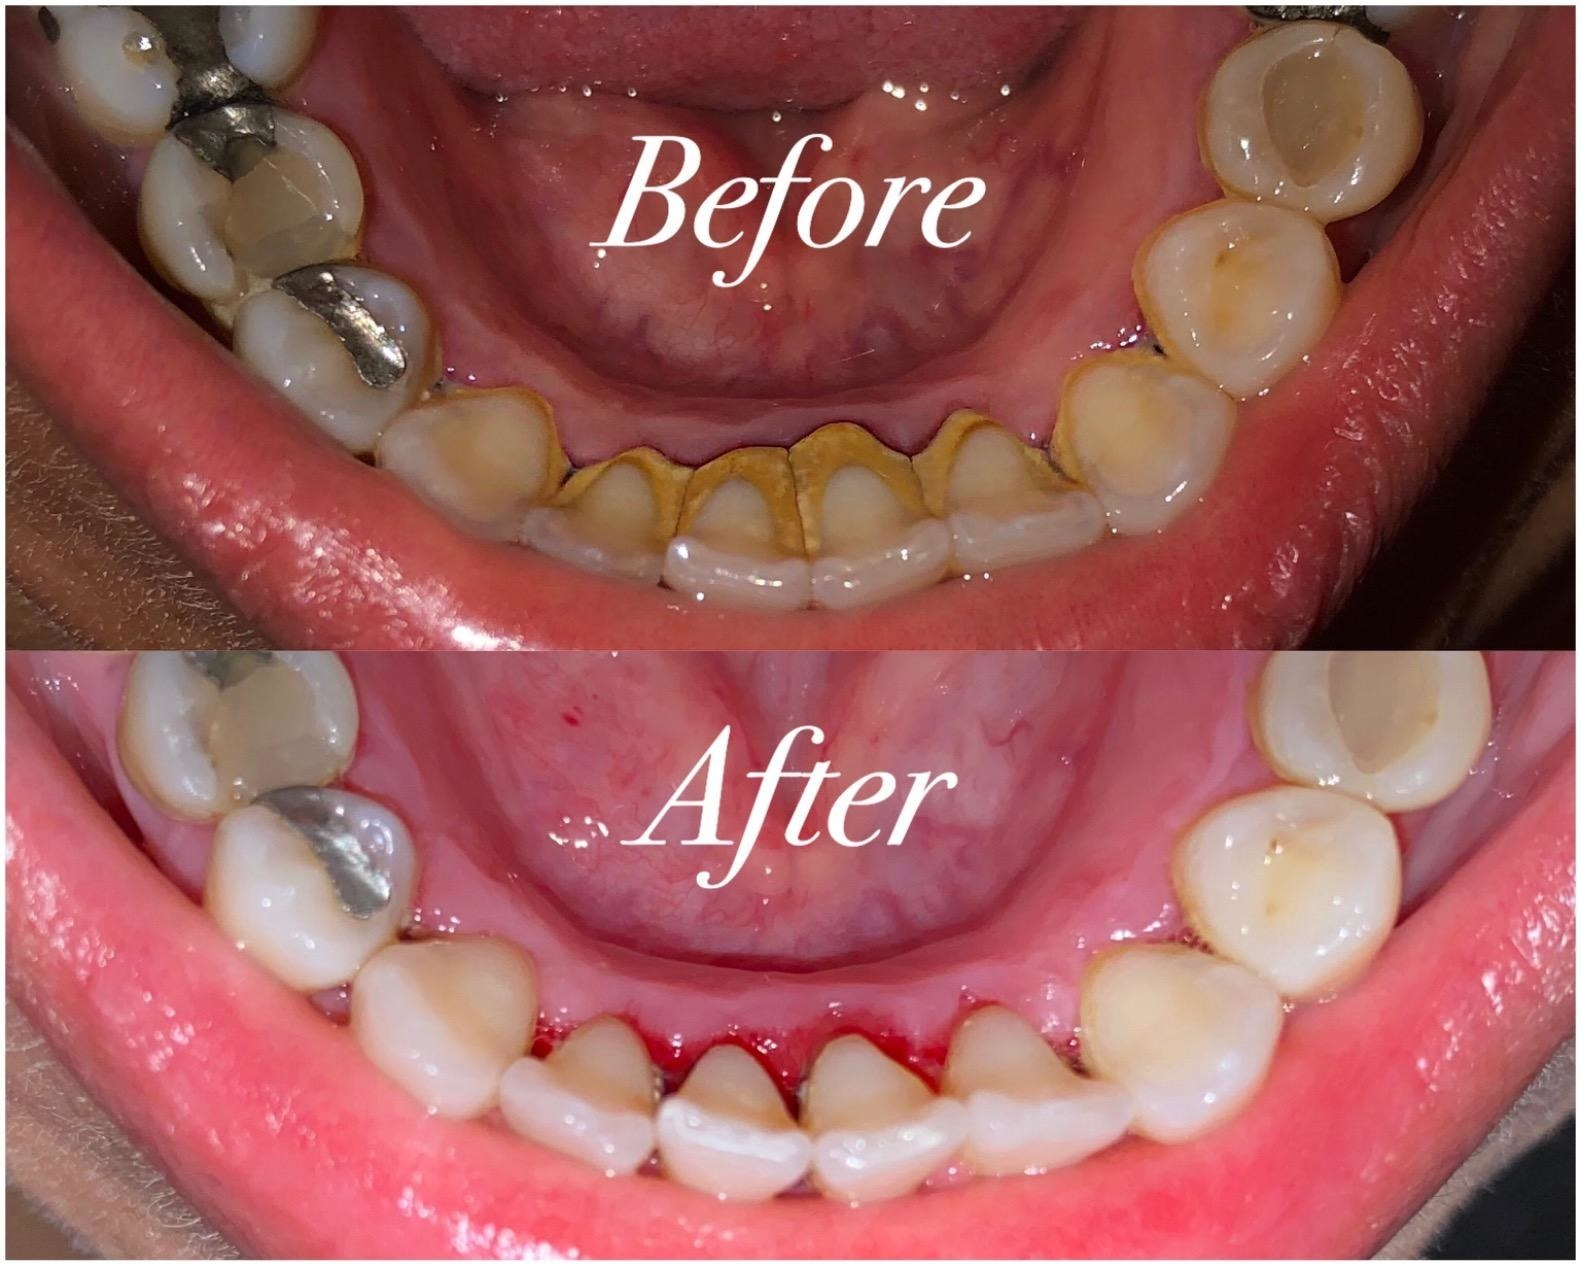 Reviewer before and after showing it removed large chunks of plaque that were on the inside of their teeth